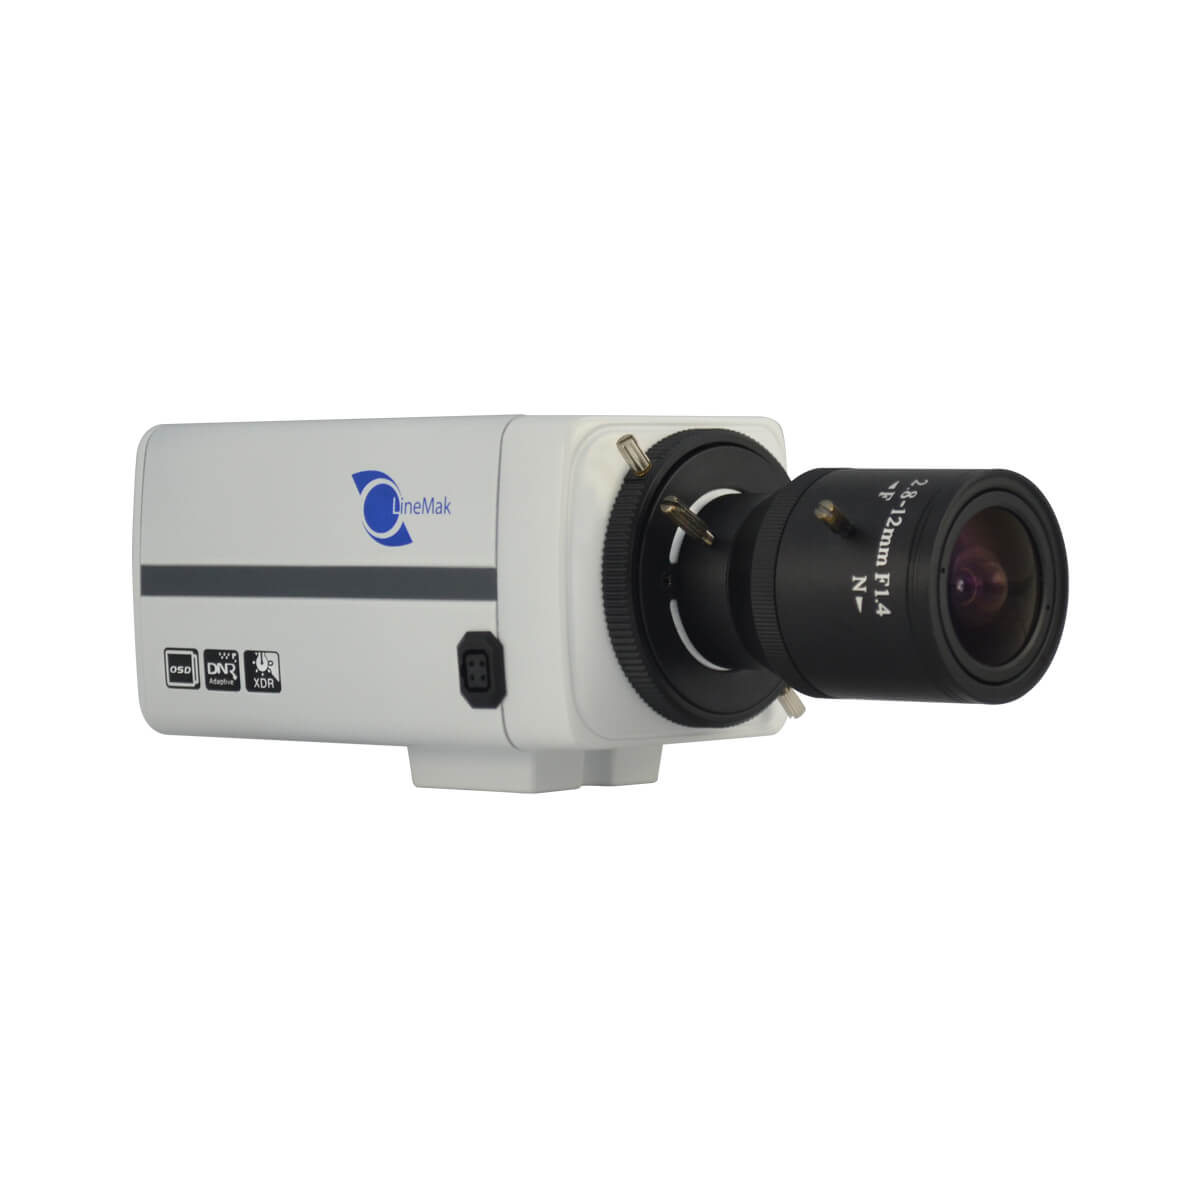 box camera, 1/3 sony ccd sensor, 700tvl, osd menu.